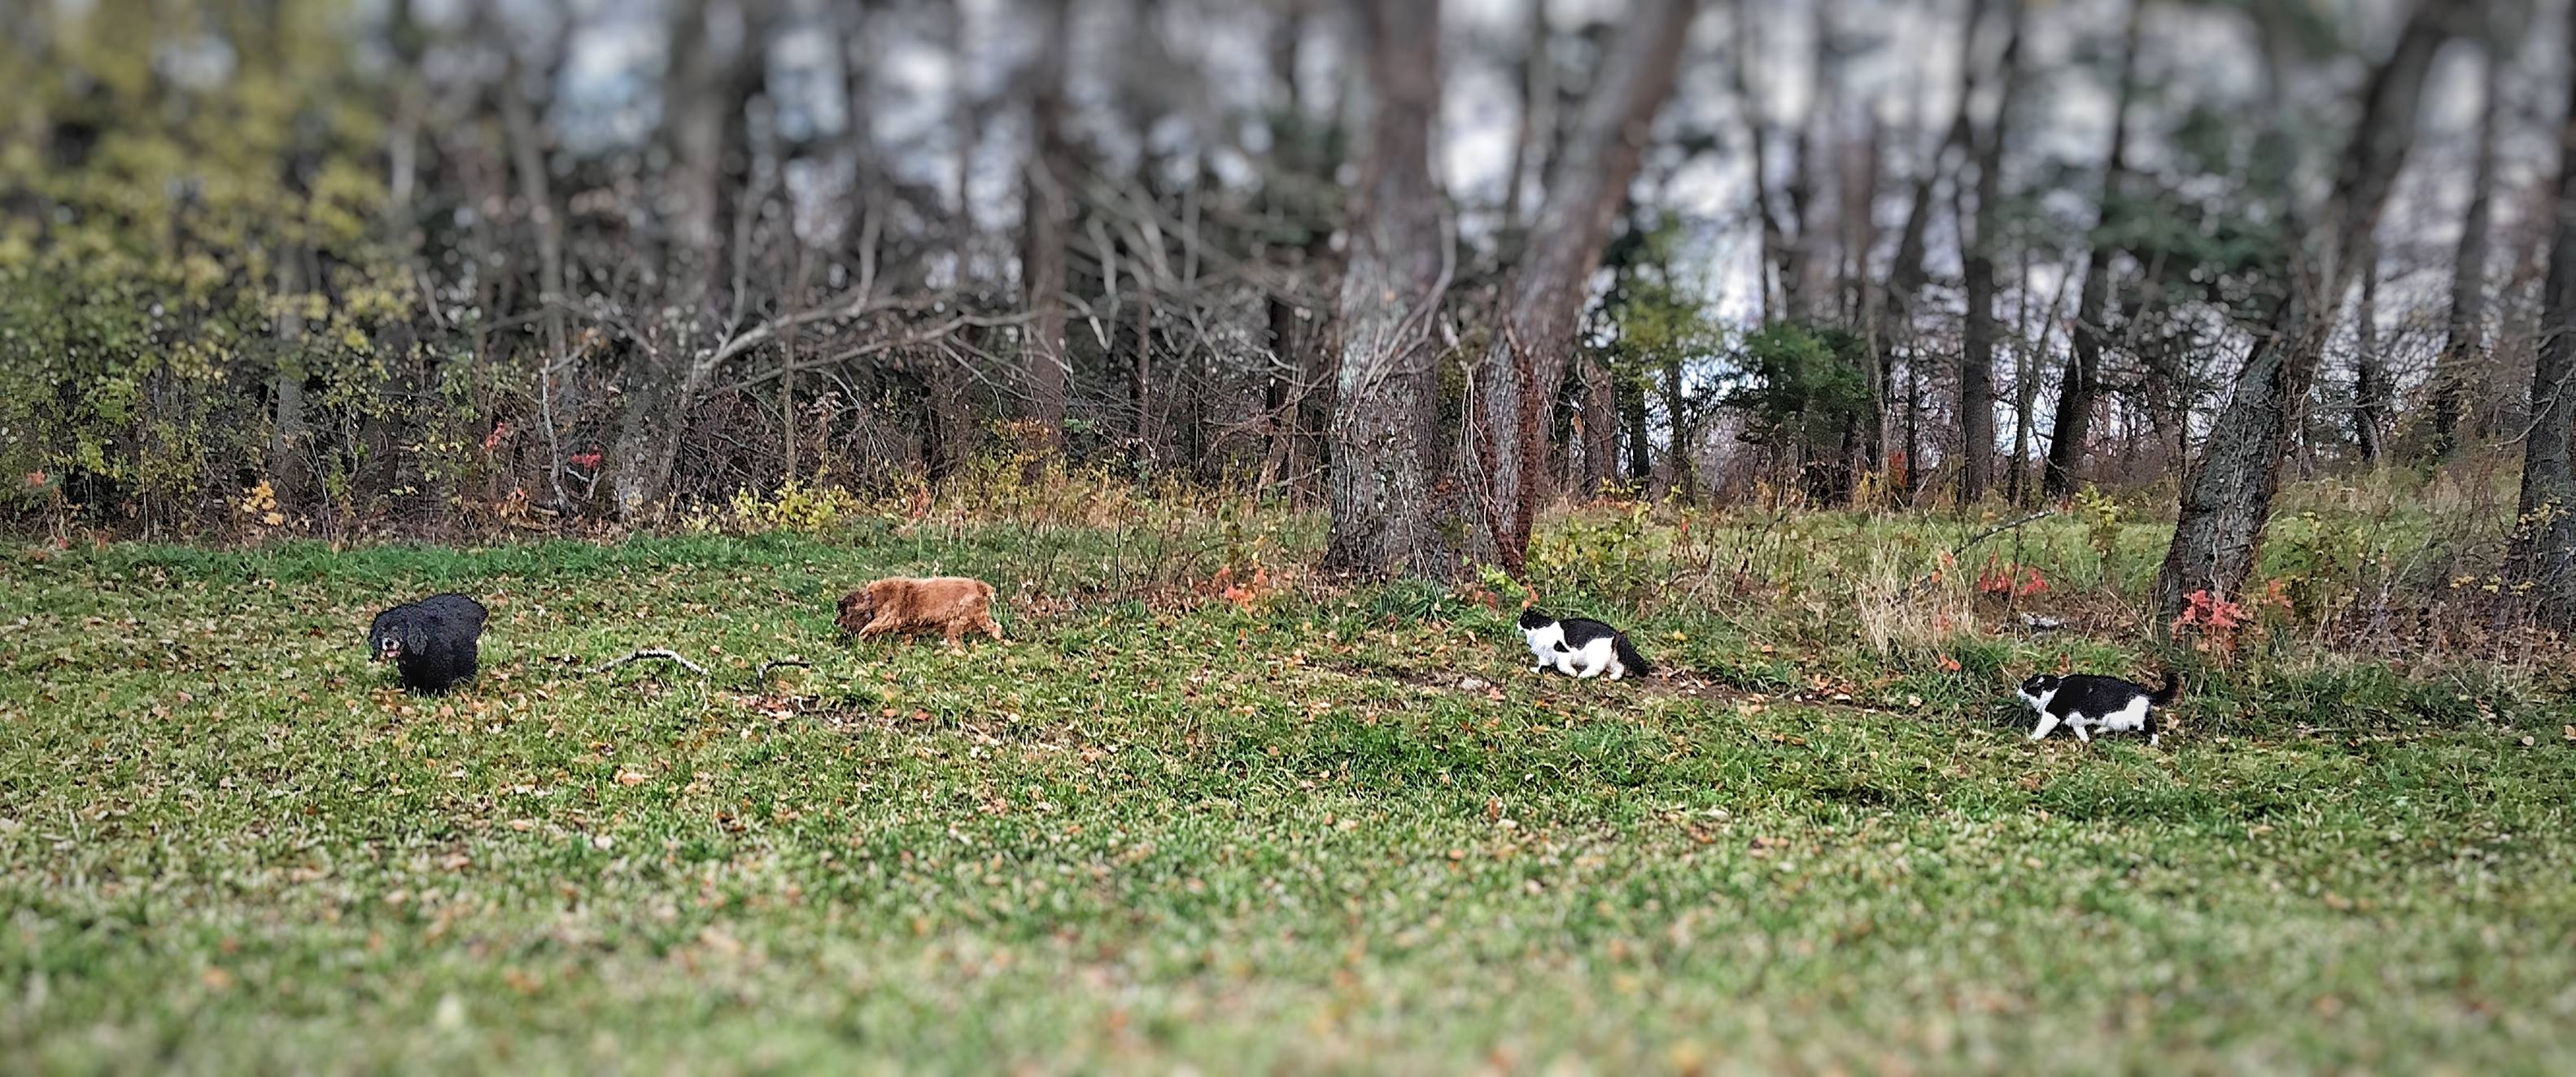 My four-legged companions on one of our daily walks.